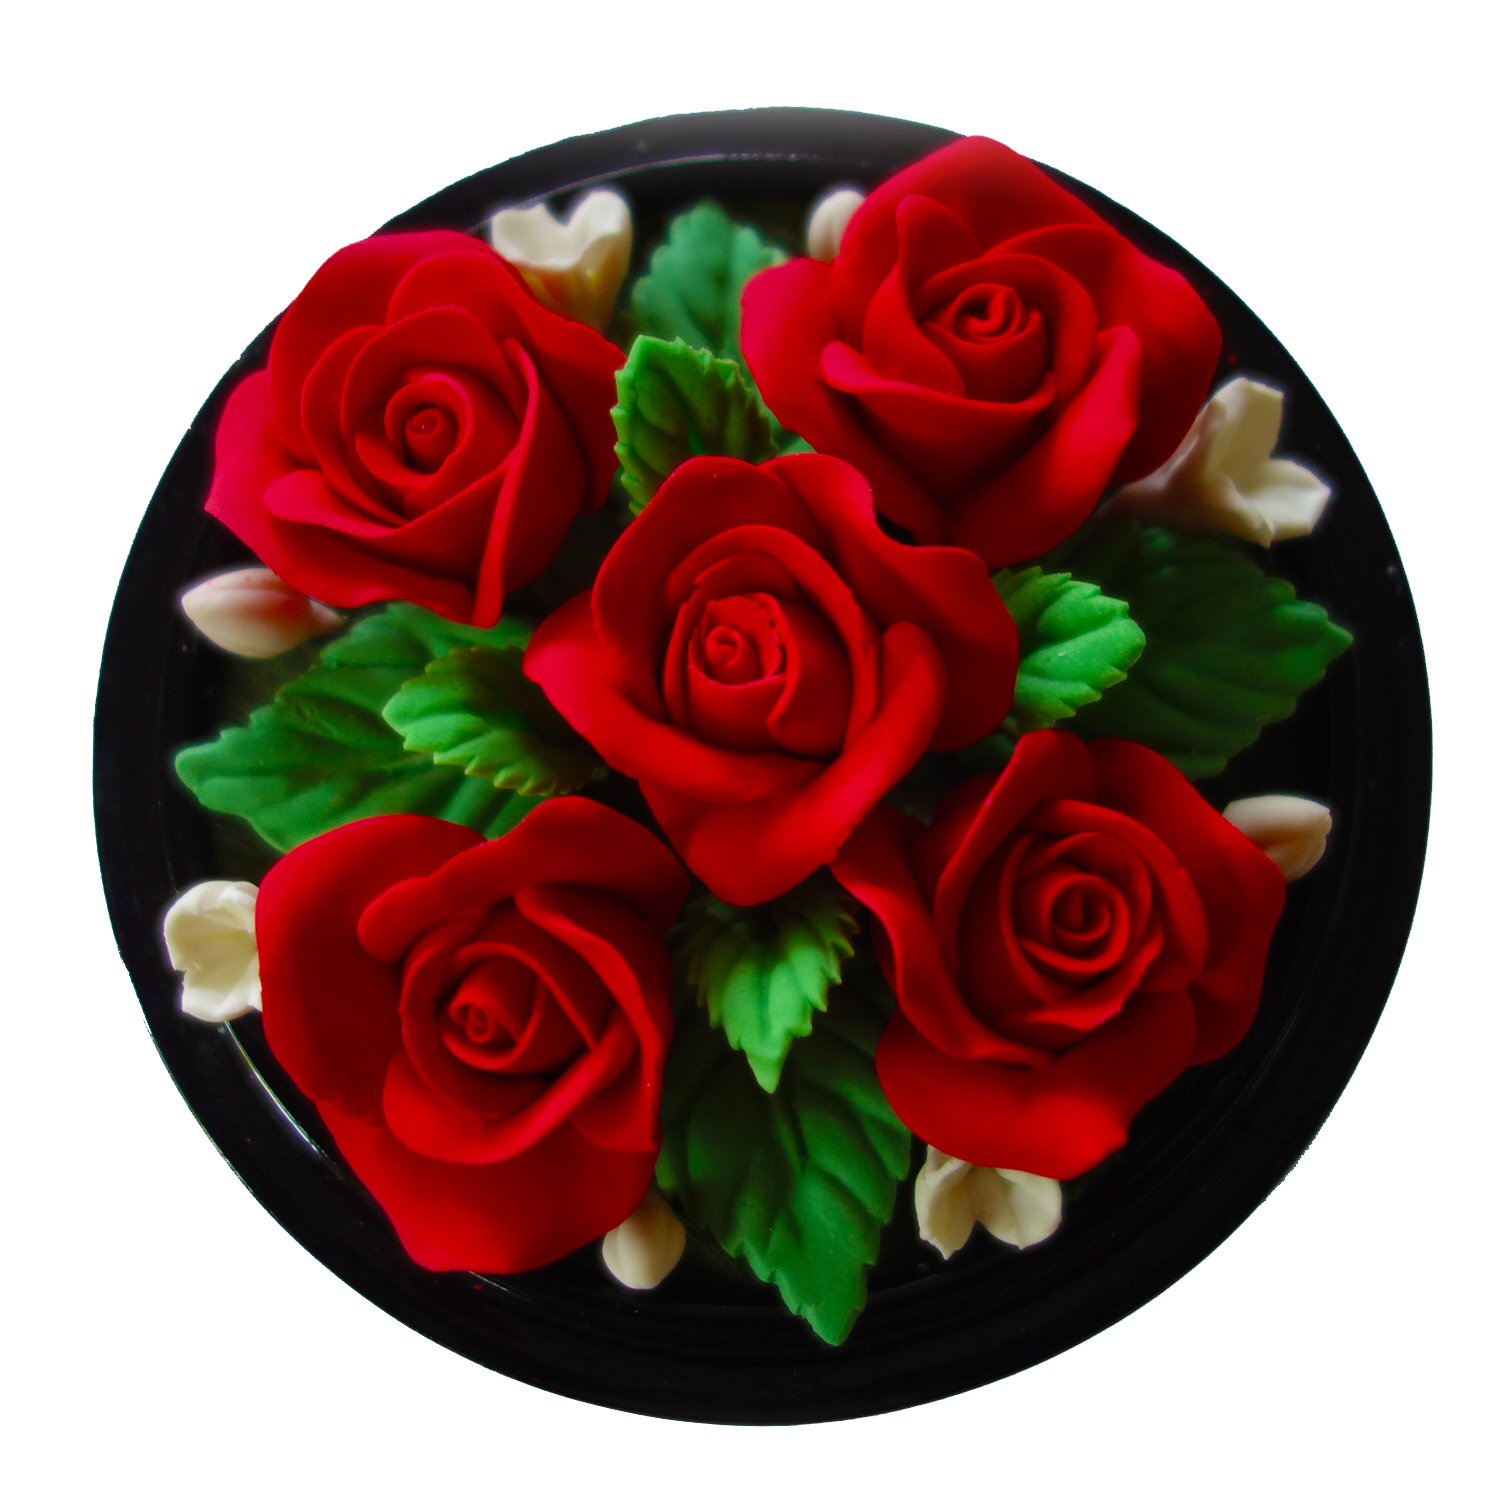 Jittasil Thai Hand-Carved Soap Flower Bouquet, 5 Inch Scented Soap Carving Gift-Set, Roses In Decorative Wood Case by Jittasil Hand-Carved Soap (Image #2)